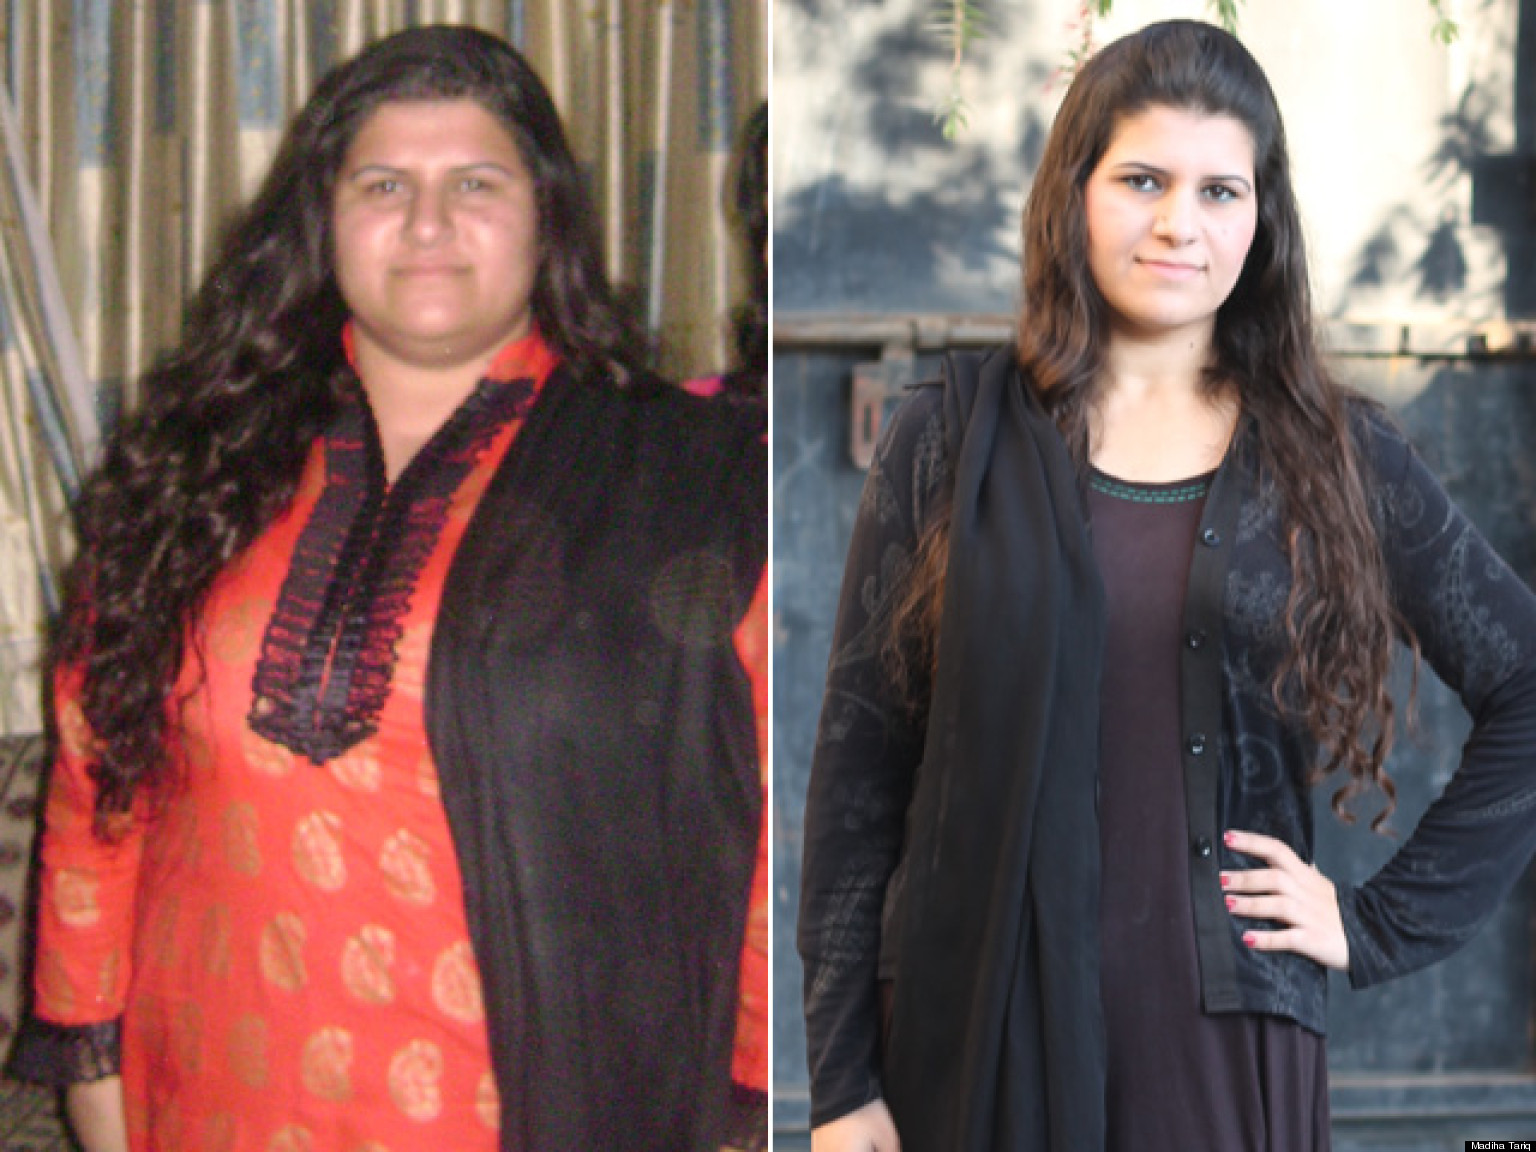 Taking ex lax to lose weight